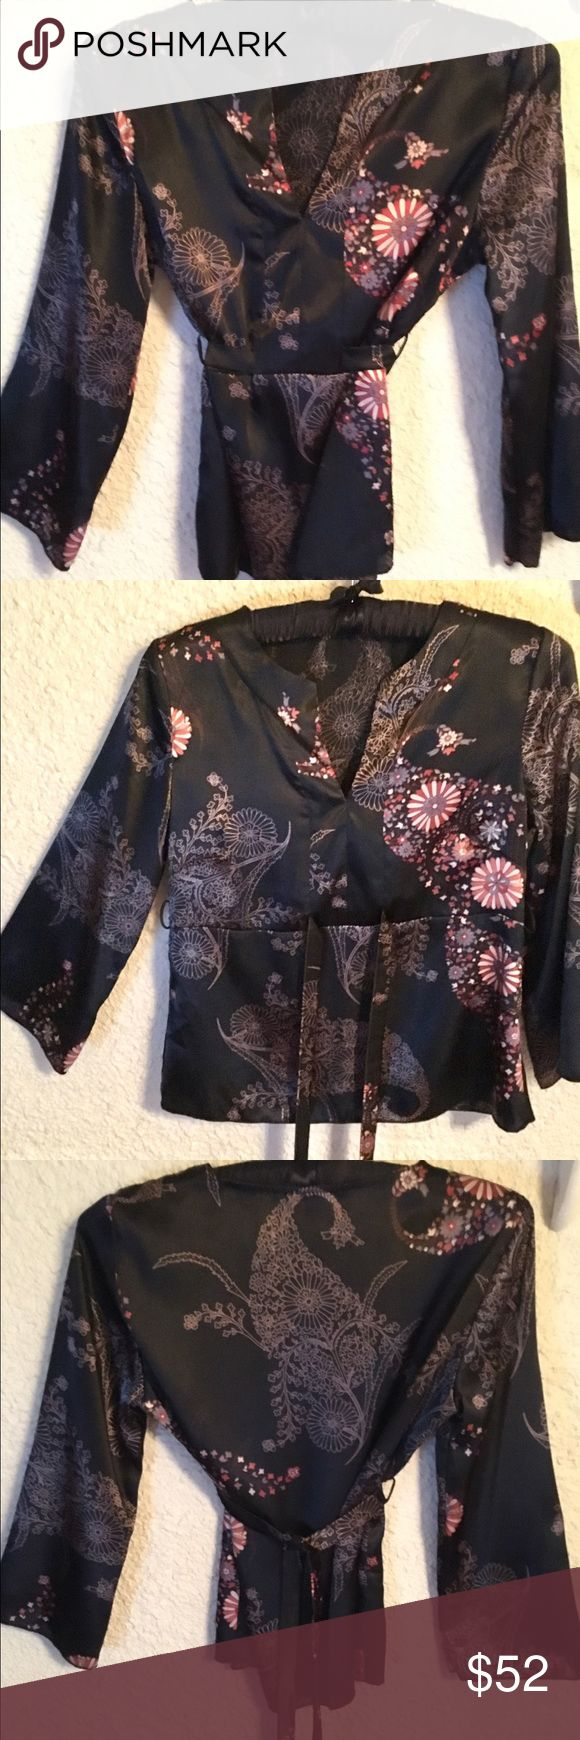 Anna Sui top Anna Sui silk top, missing tags otherwise like brand new. Anna Sui Tops Blouses